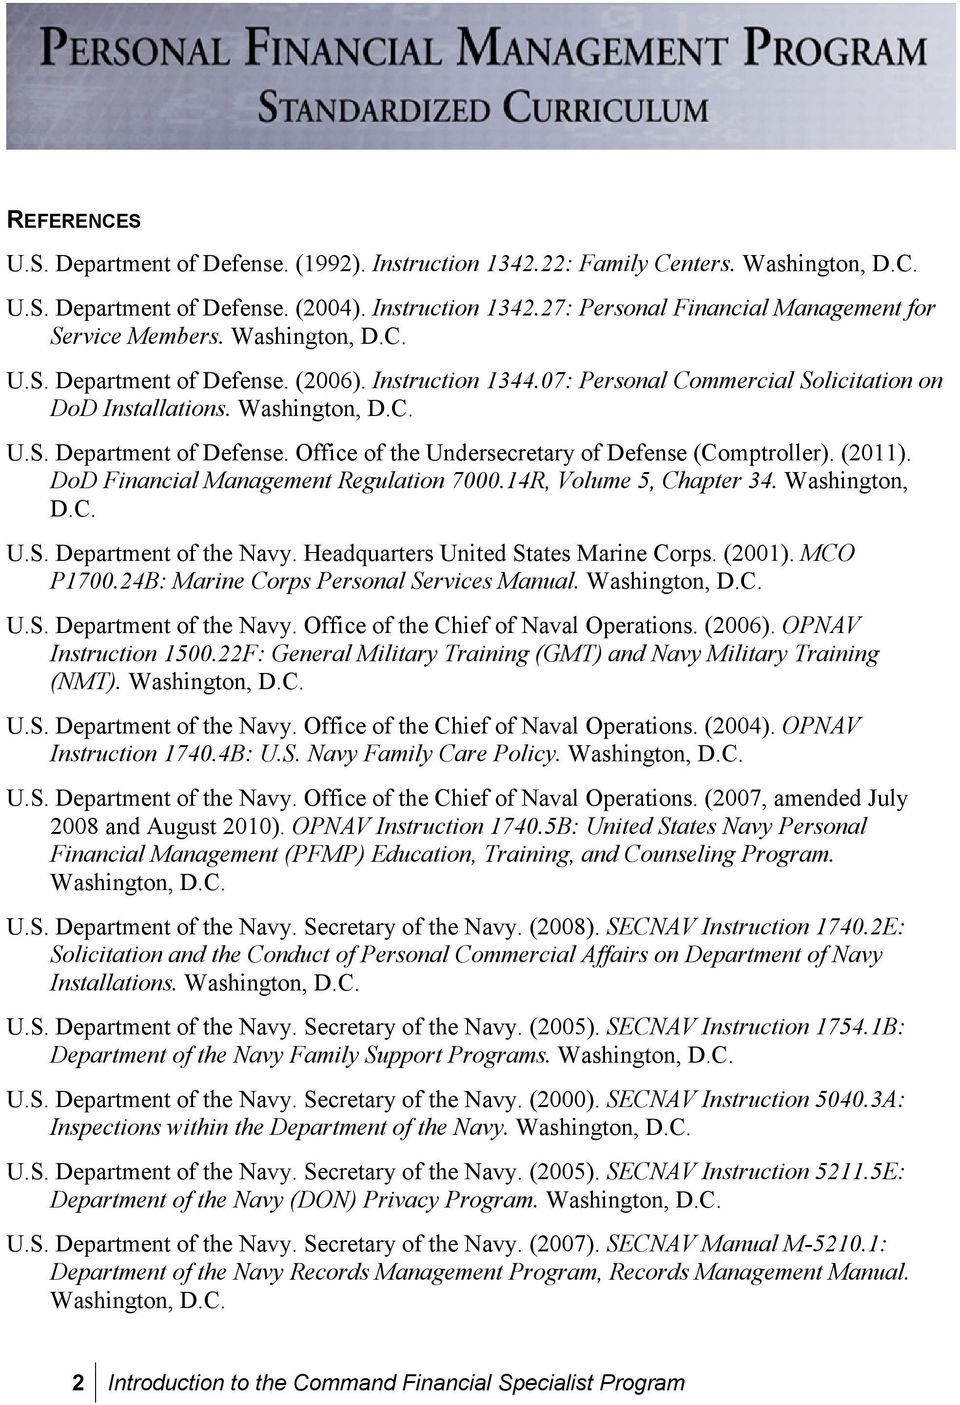 (2011). DoD Financial Management Regulation 7000.14R, Volume 5, Chapter 34. Washington, D.C. U.S. Department of the Navy. Headquarters United States Marine Corps. (2001). MCO P1700.